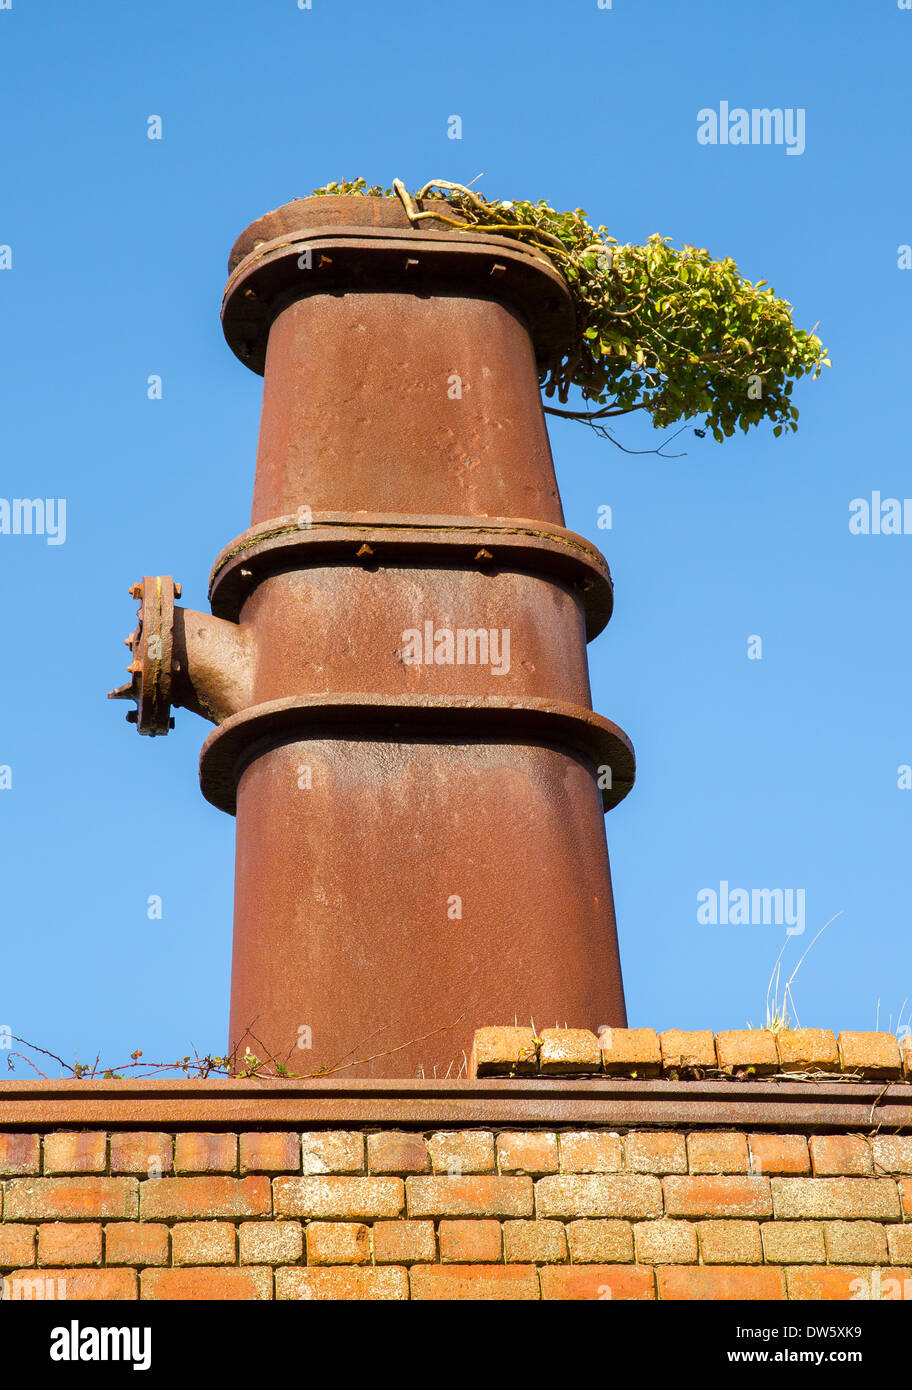 Disused oil extraction retort at Kilve Somerset with ivy on the chimney remeniscent of smoke - Stock Image